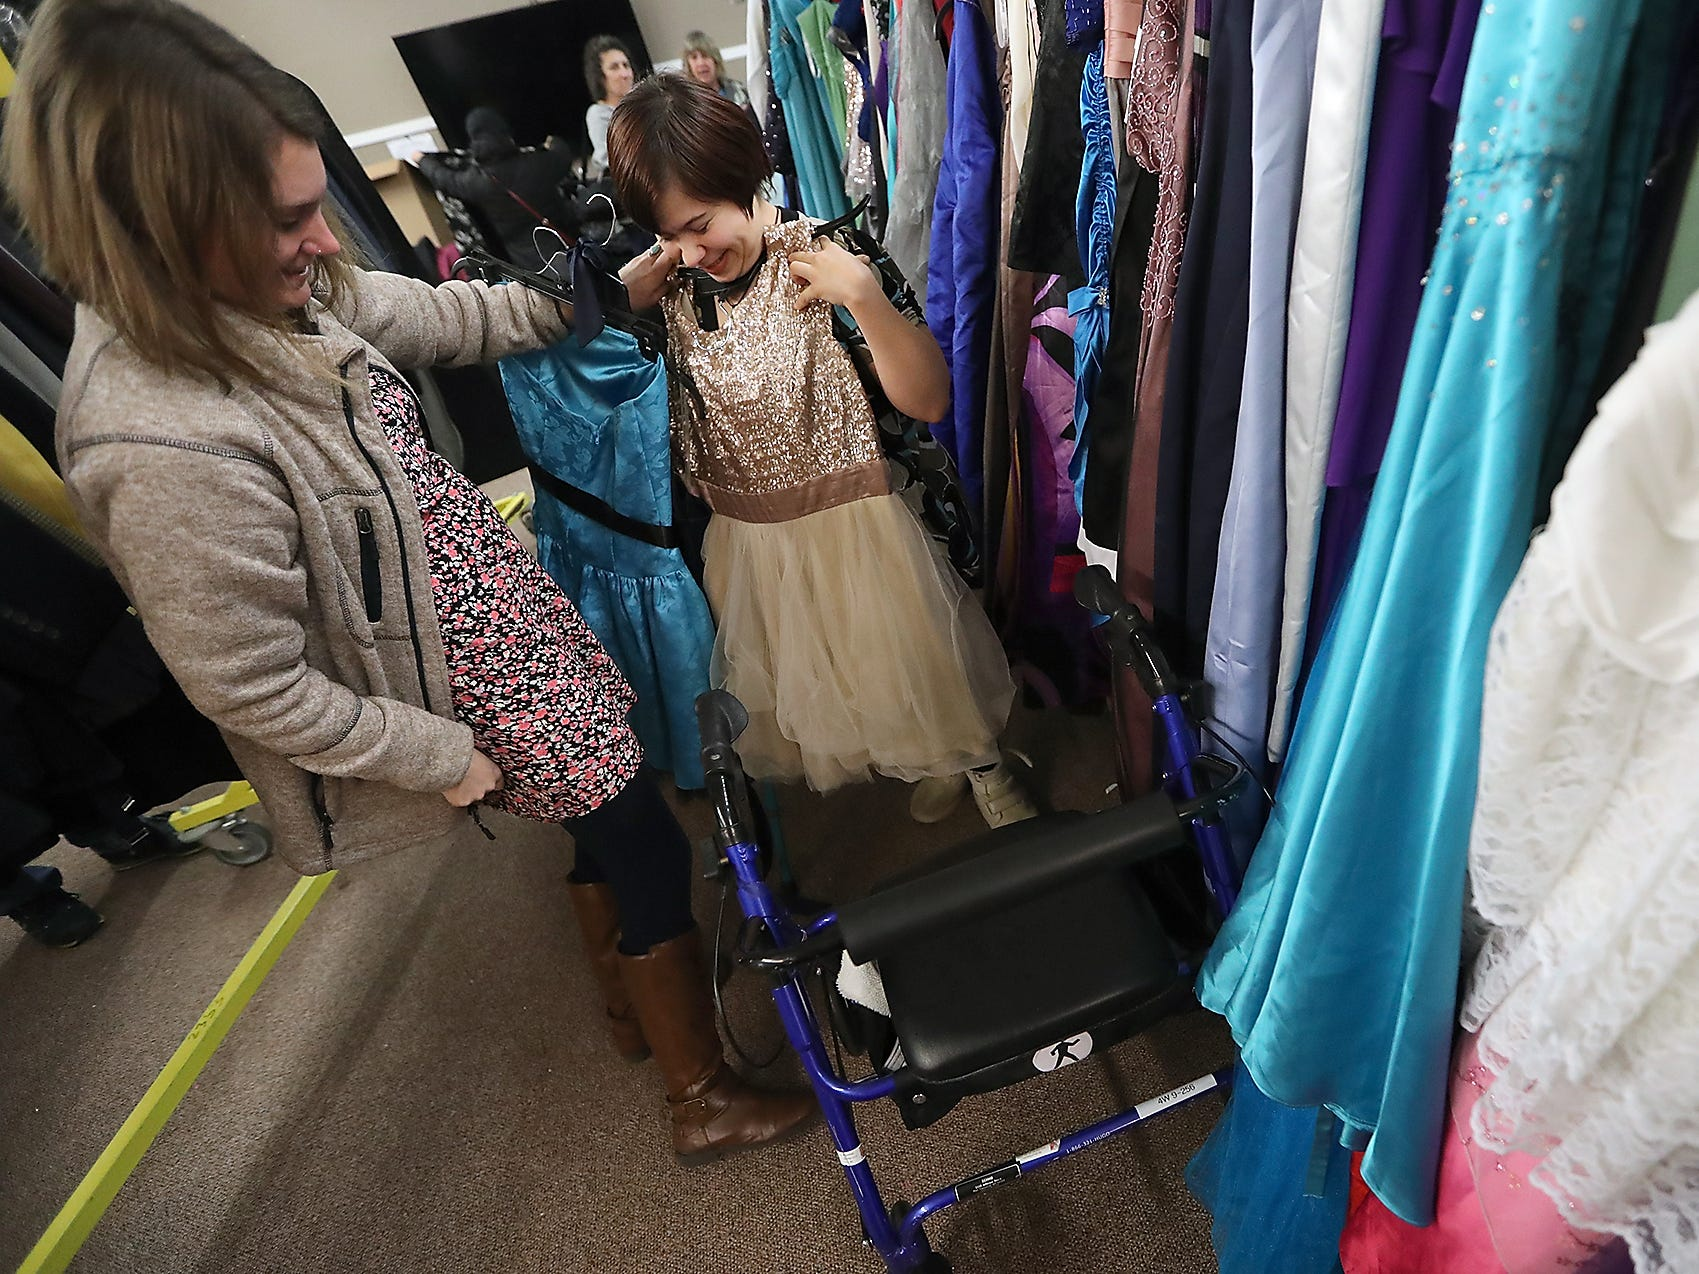 Taylor Webster (left), of Cascade Community Connection, holds a dress against Kaitlyn Winn, as the two shop for a dress for Winn to wear to her first Night To Shine prom, at the Arc of the Peninsulas in Bremerton on Friday, February 1, 2019. Night To Shine attendees were able to visit the dress shop at the Arc and pick out donated suits, dresses and accessories to wear to the upcoming formal event which will take place on February 8th at the Kitsap Sun Pavilion.